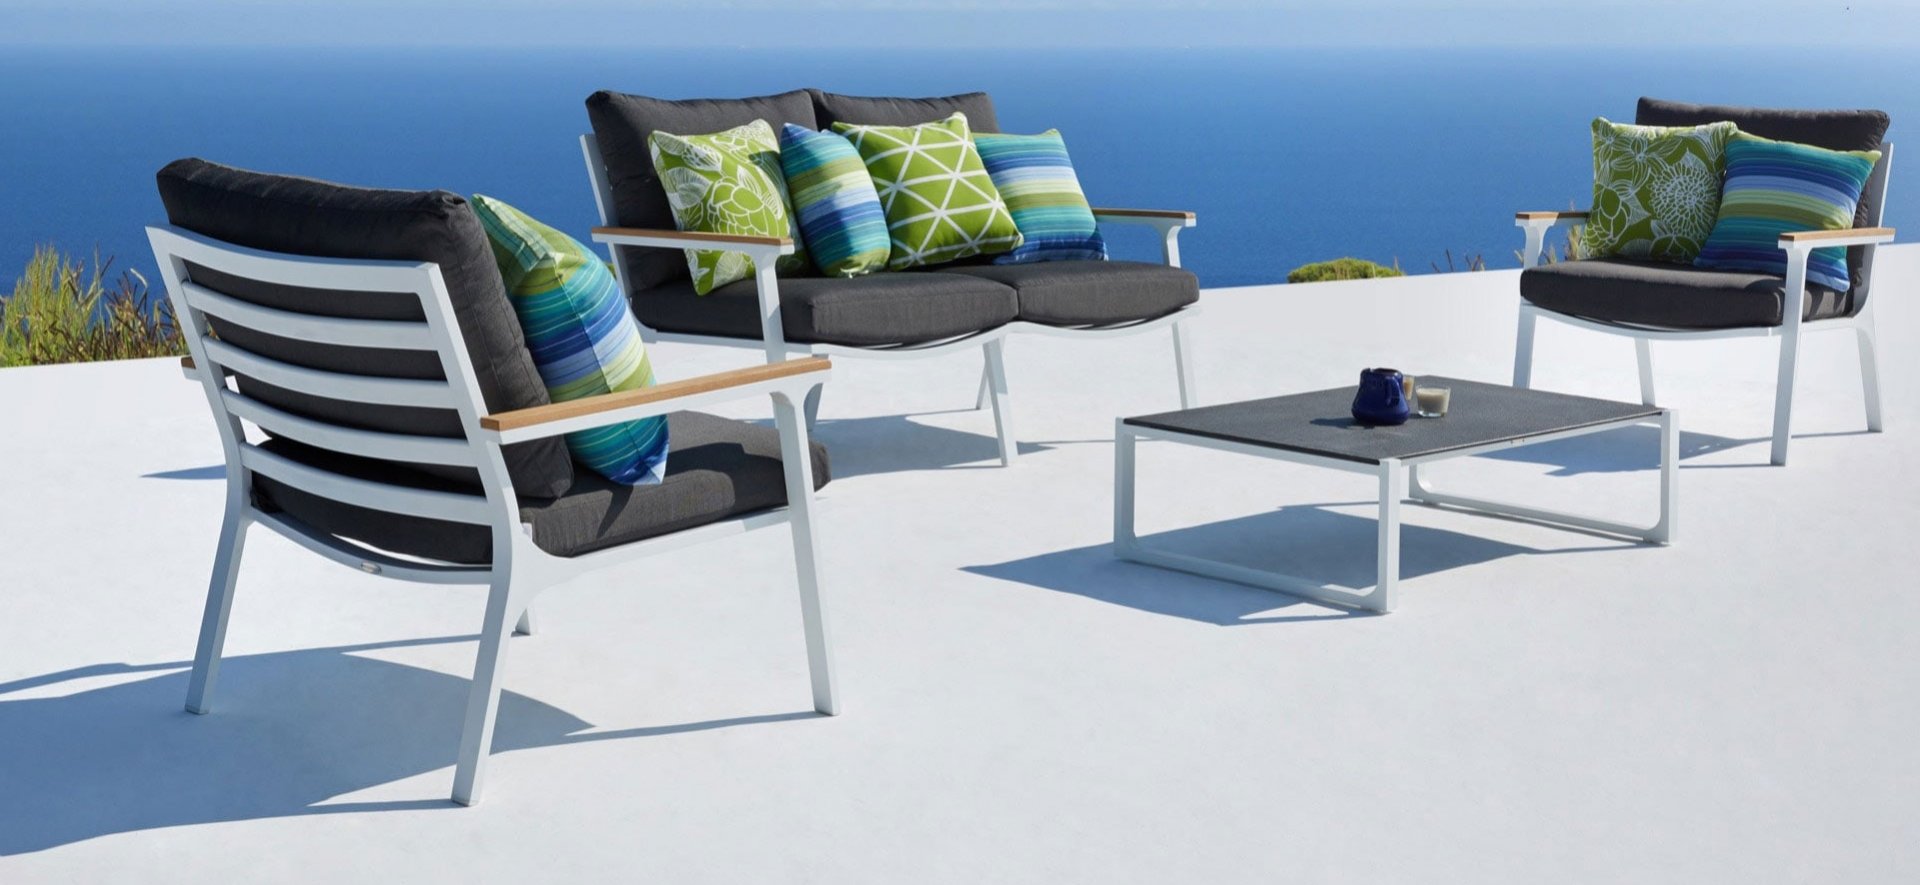 Athens Outdoor Lounge Furniture